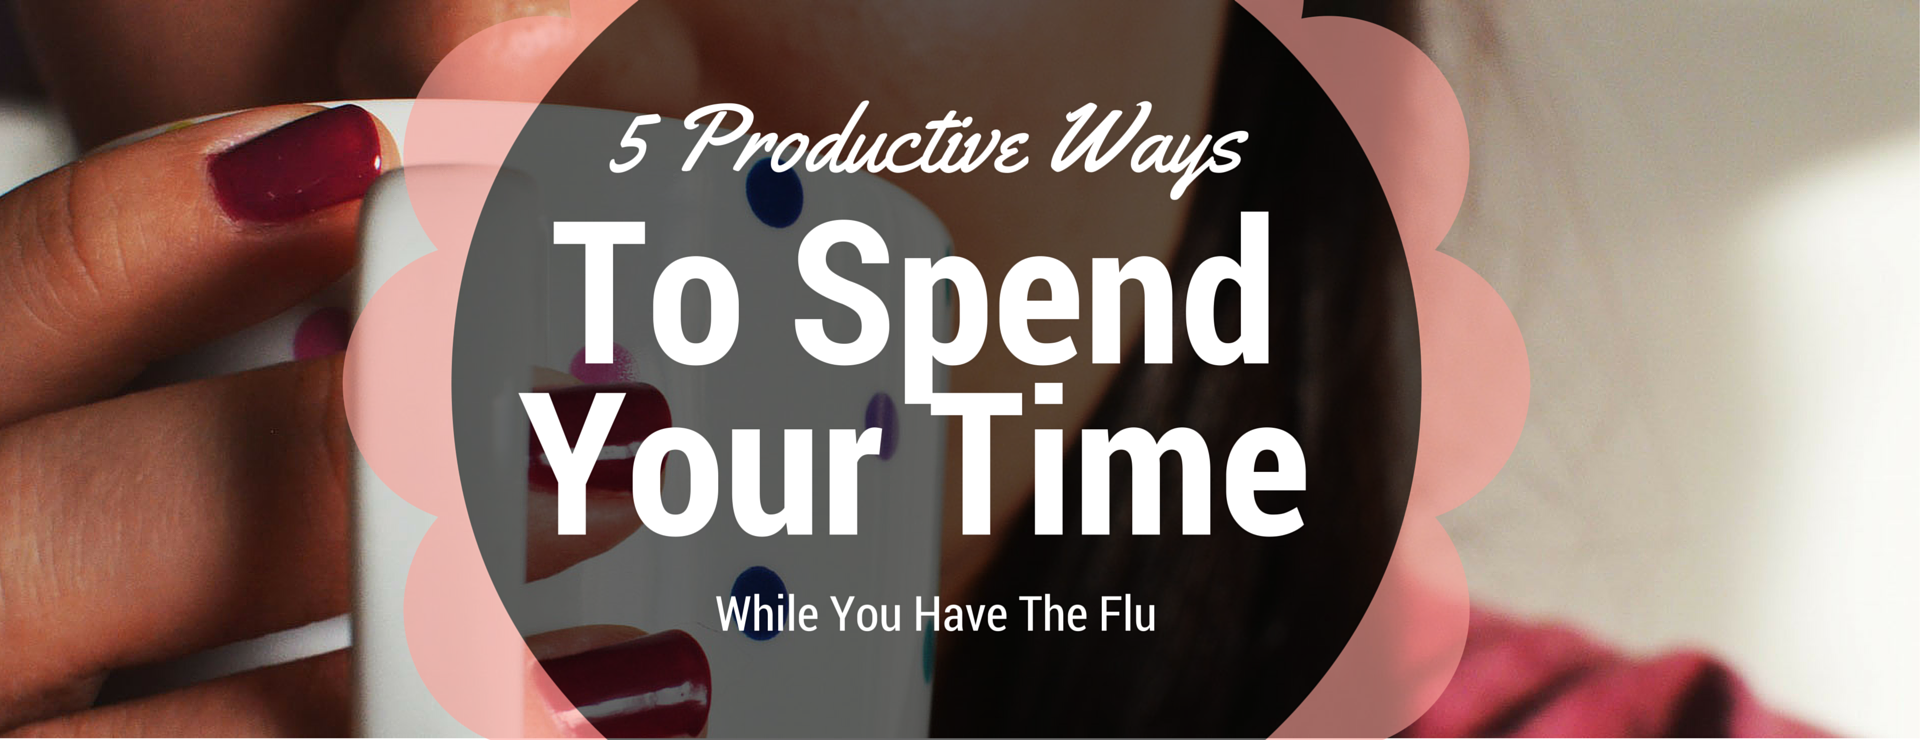 5 Productive Ways To Spend Your Time While You Have The Flu